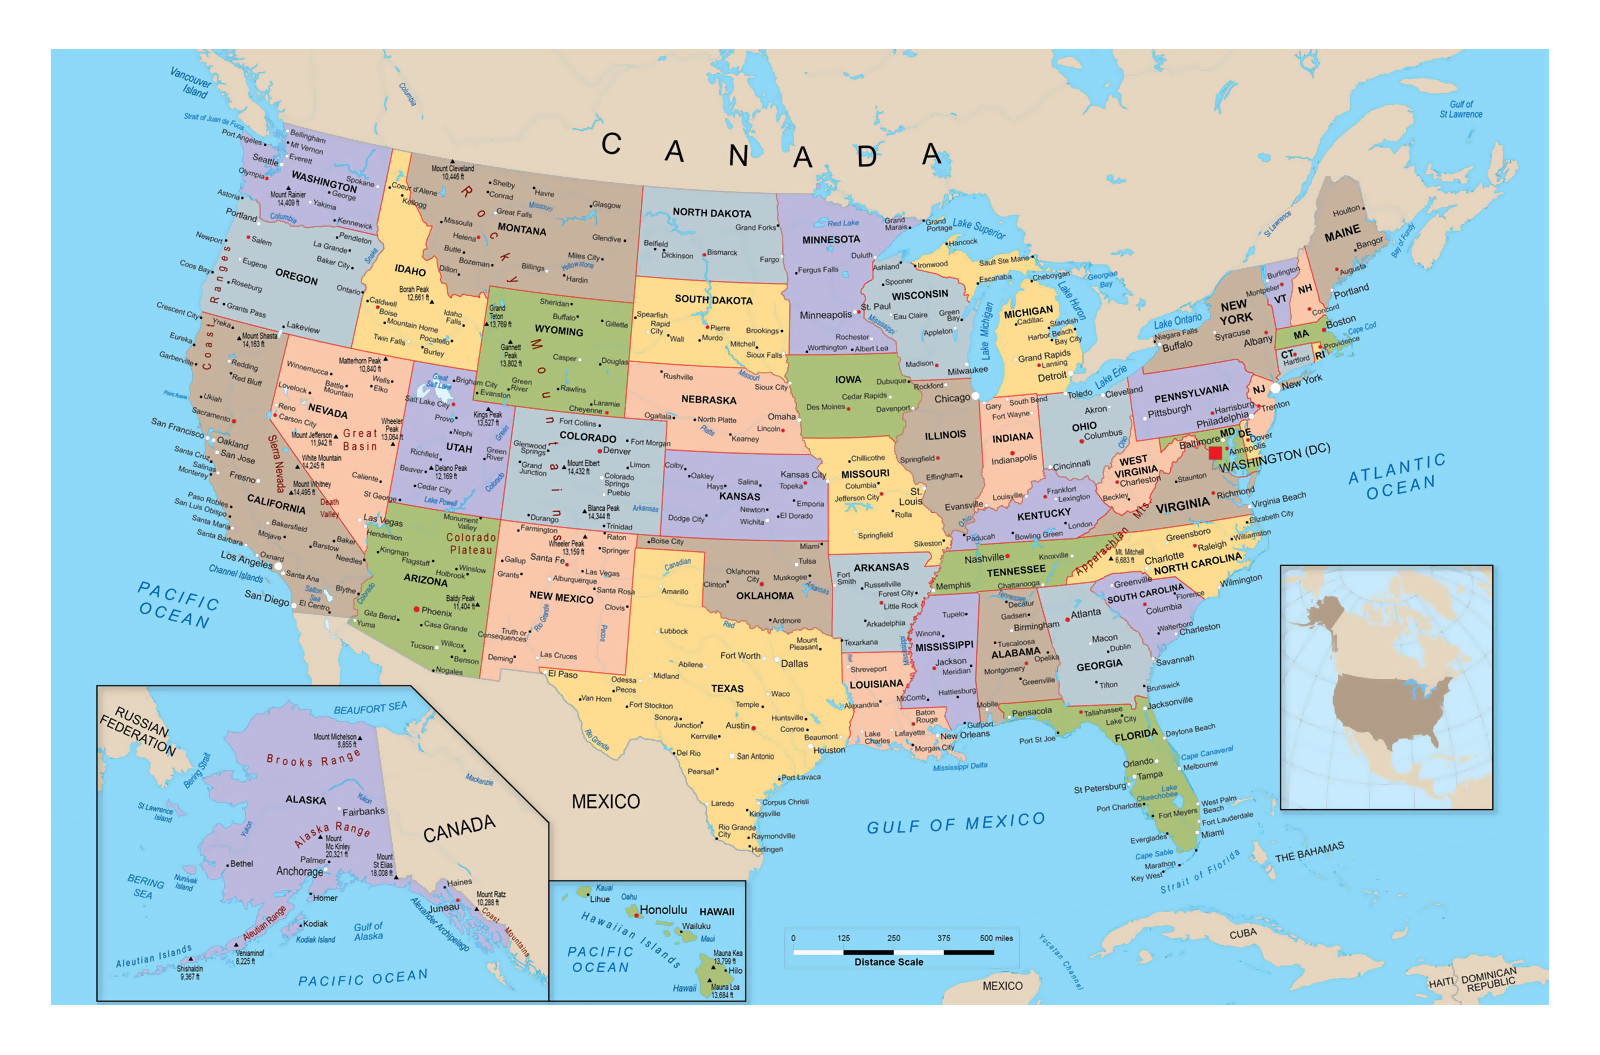 Www Map Of The United States.Large Political And Administrative Map Of The United States Usa